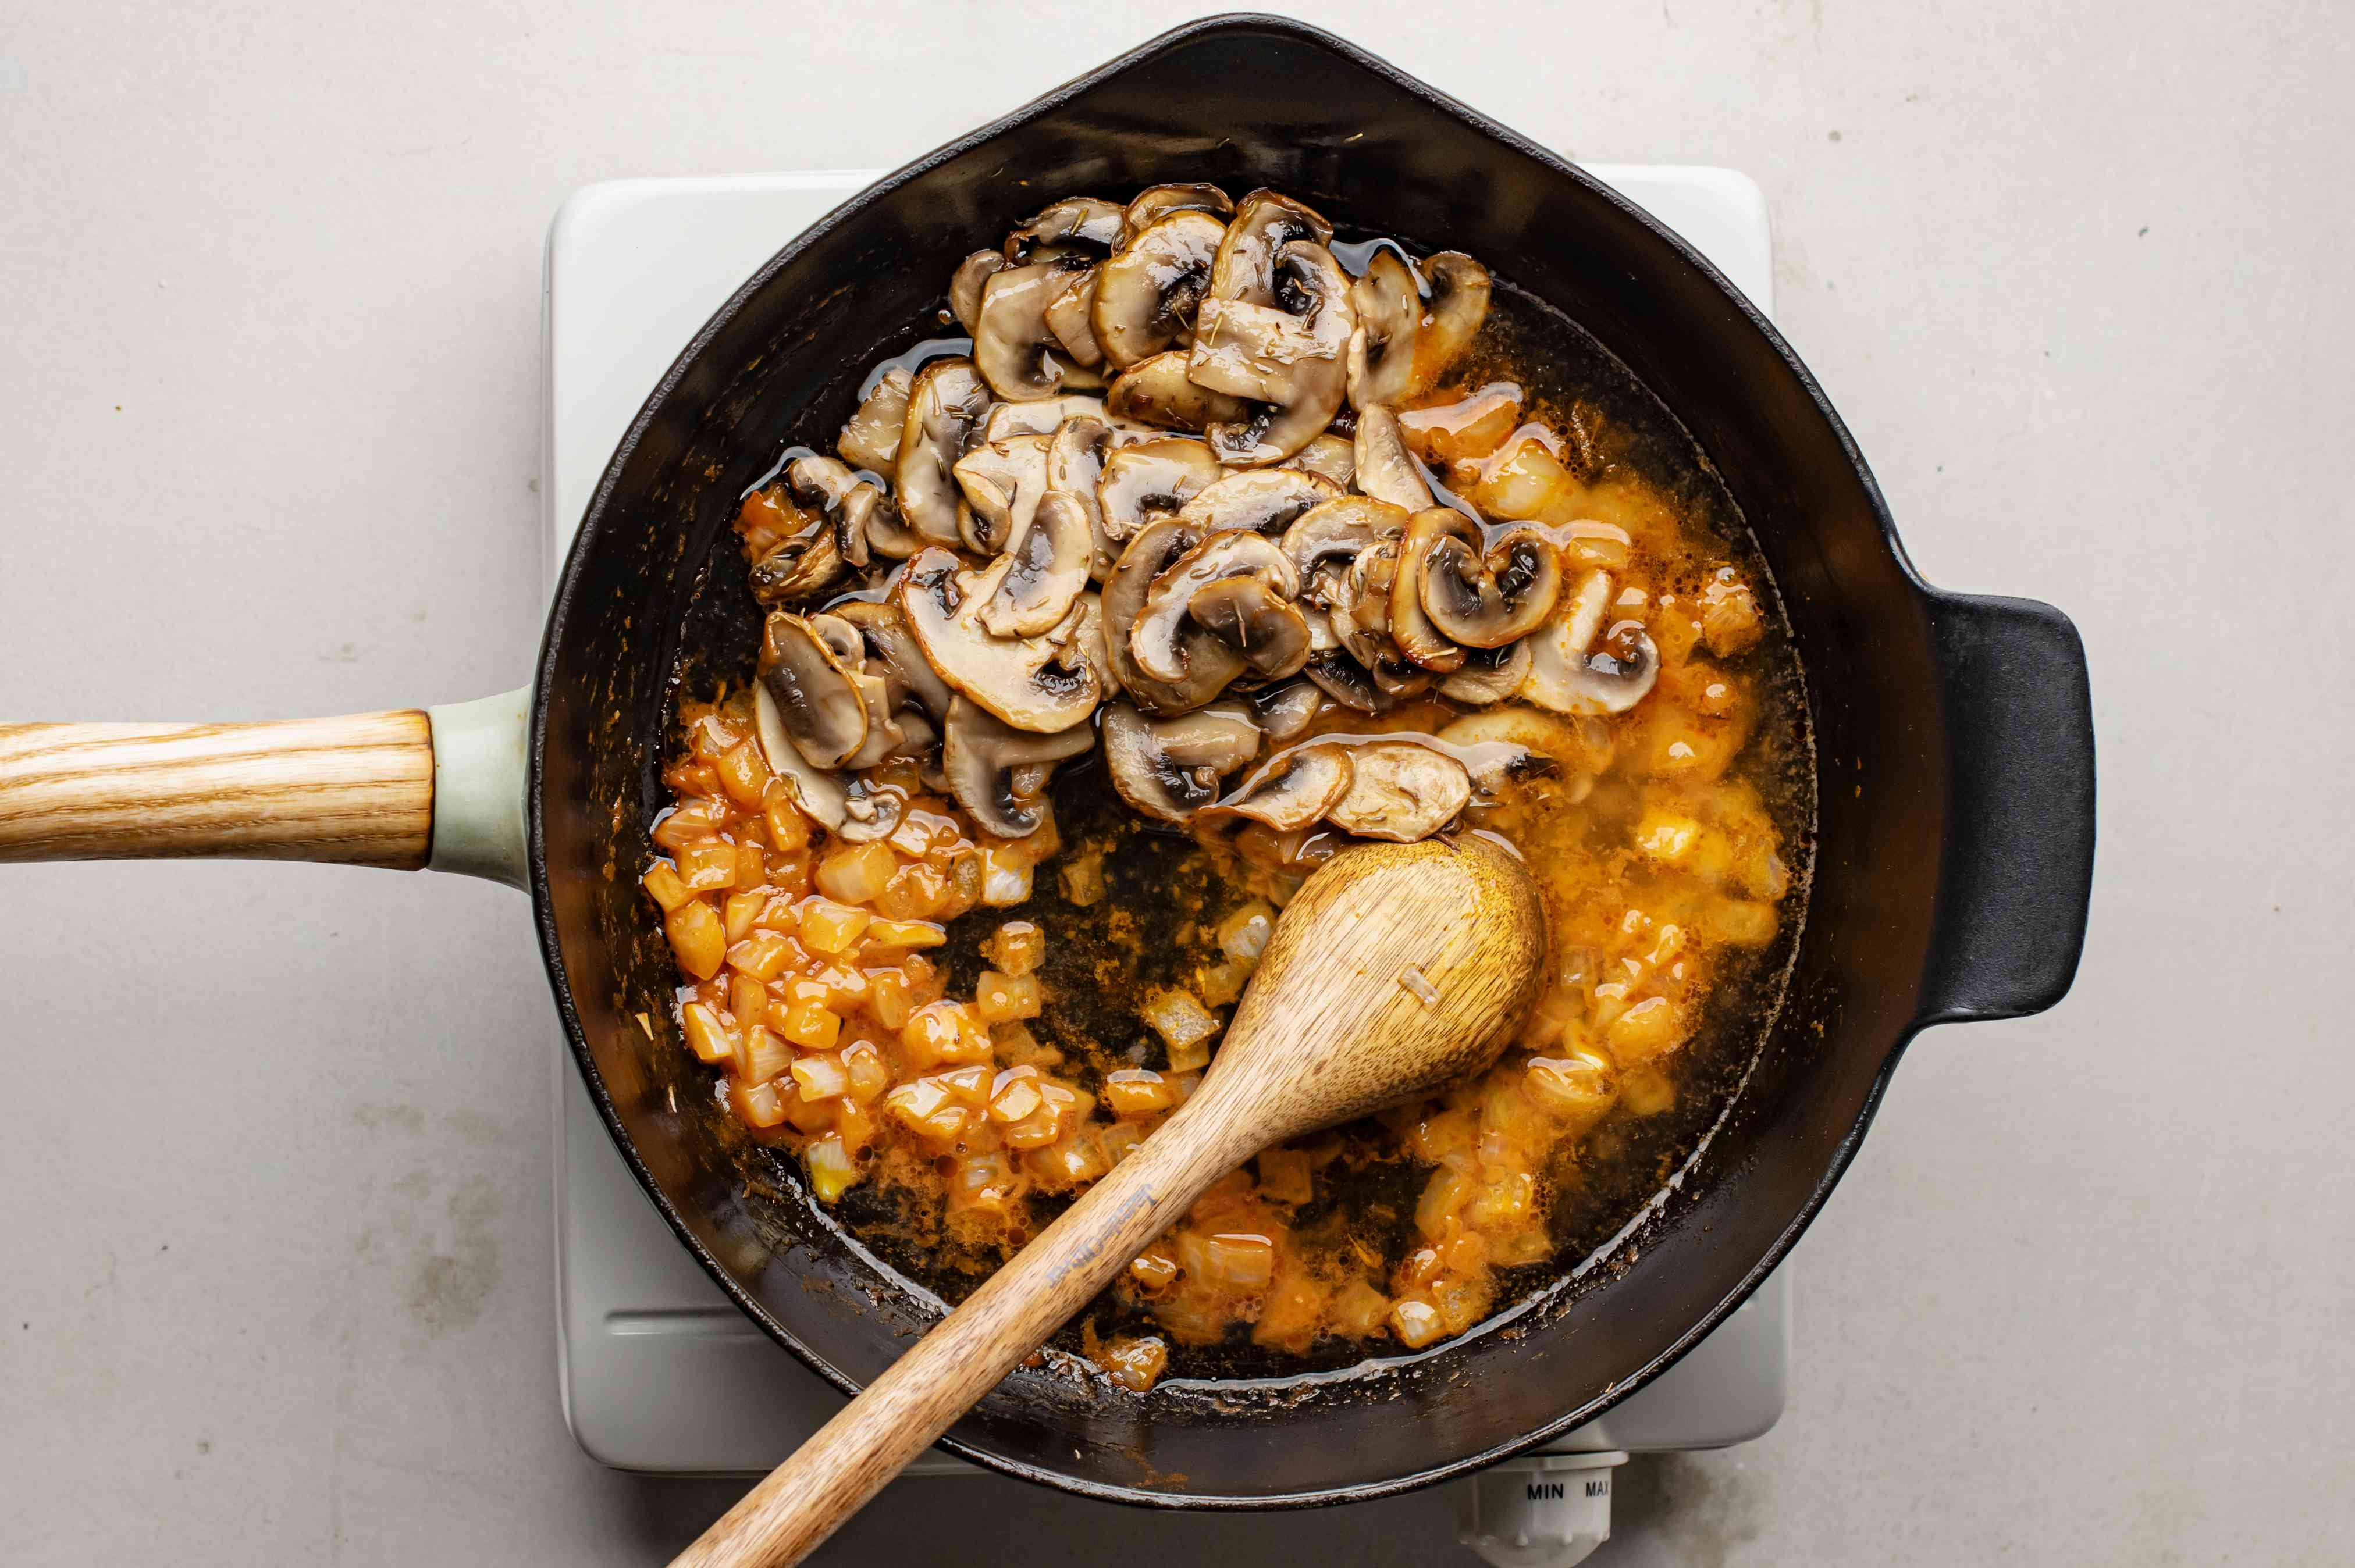 Mushrooms, onions, and tomato paste cooking in skillet